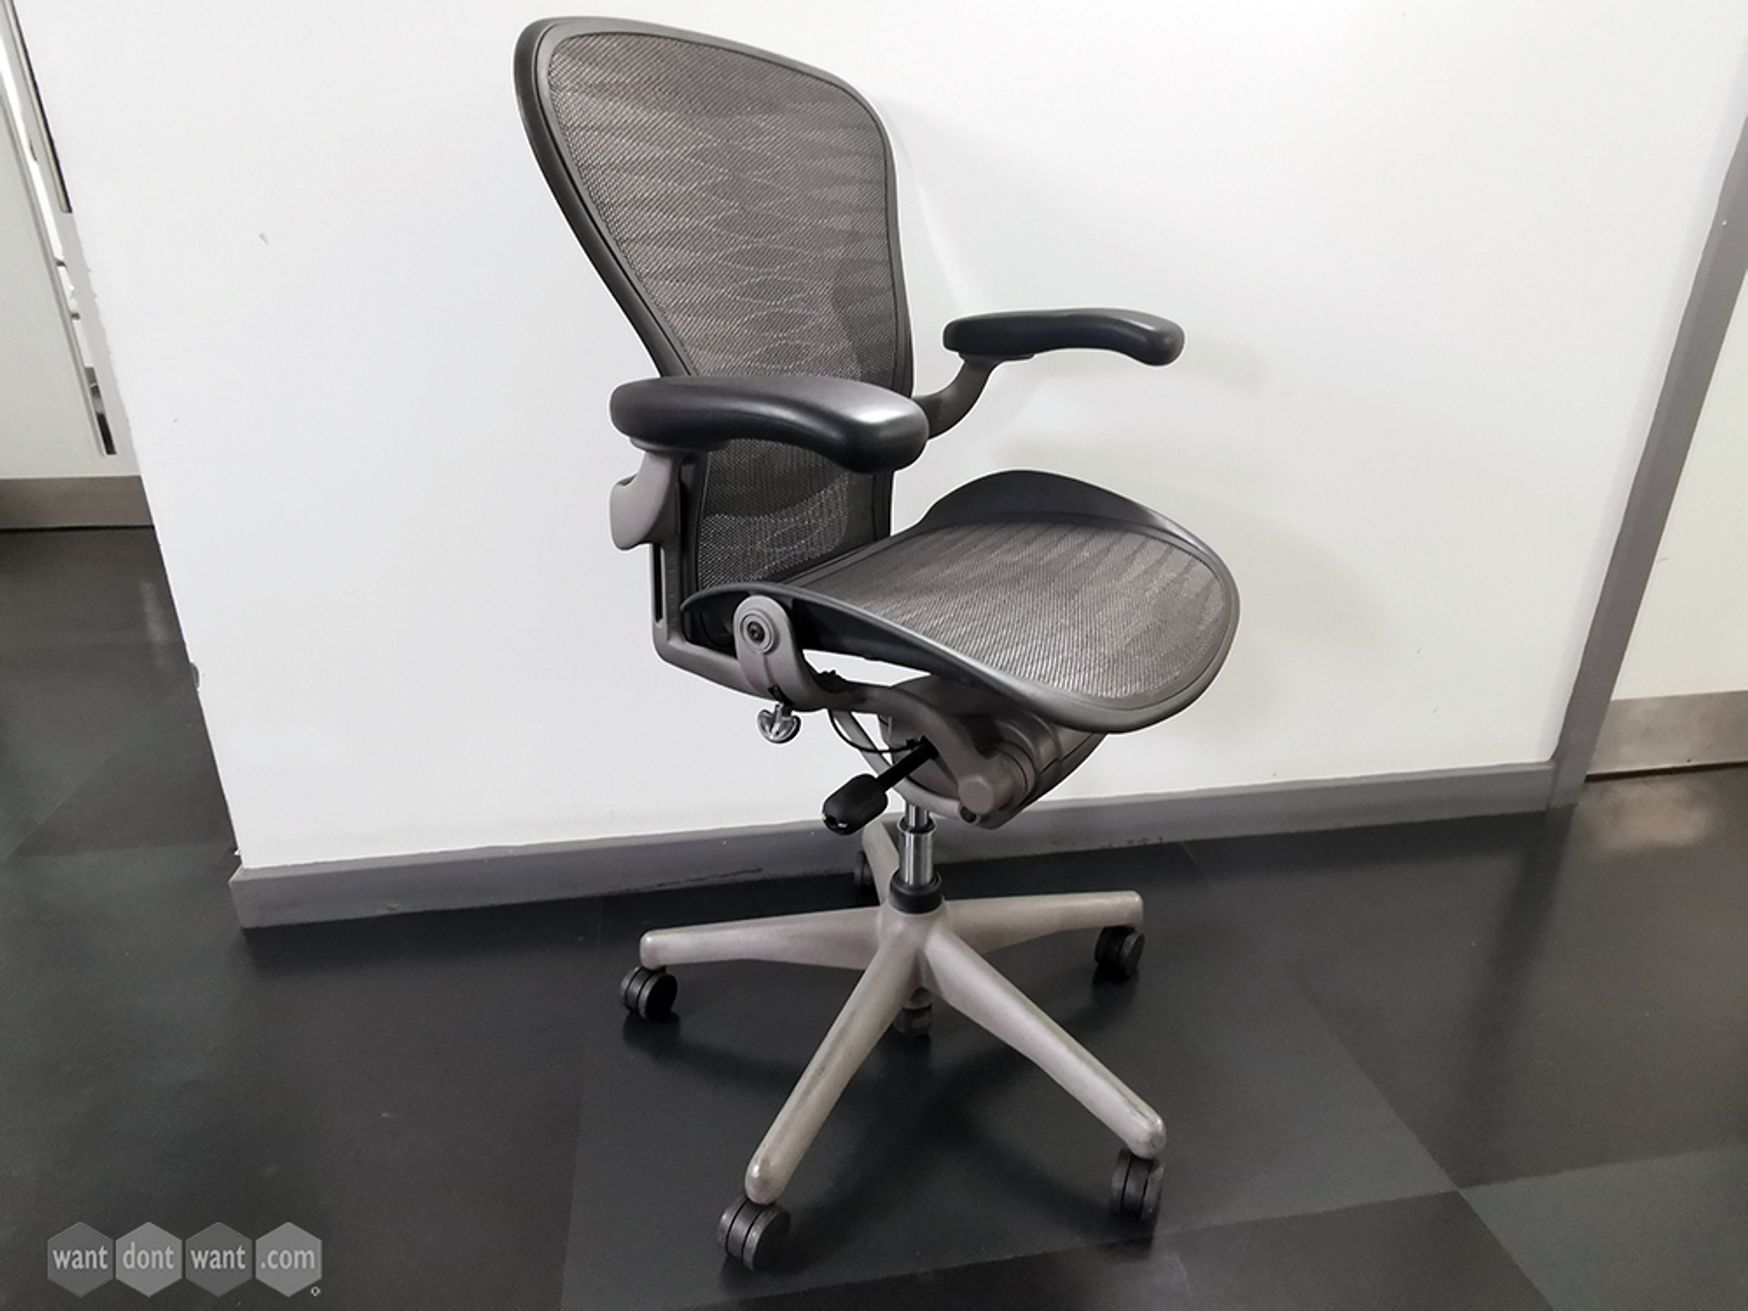 Used Size B Herman Miller Aeron Chairs with Tuxedo Mesh and Lumbar Support